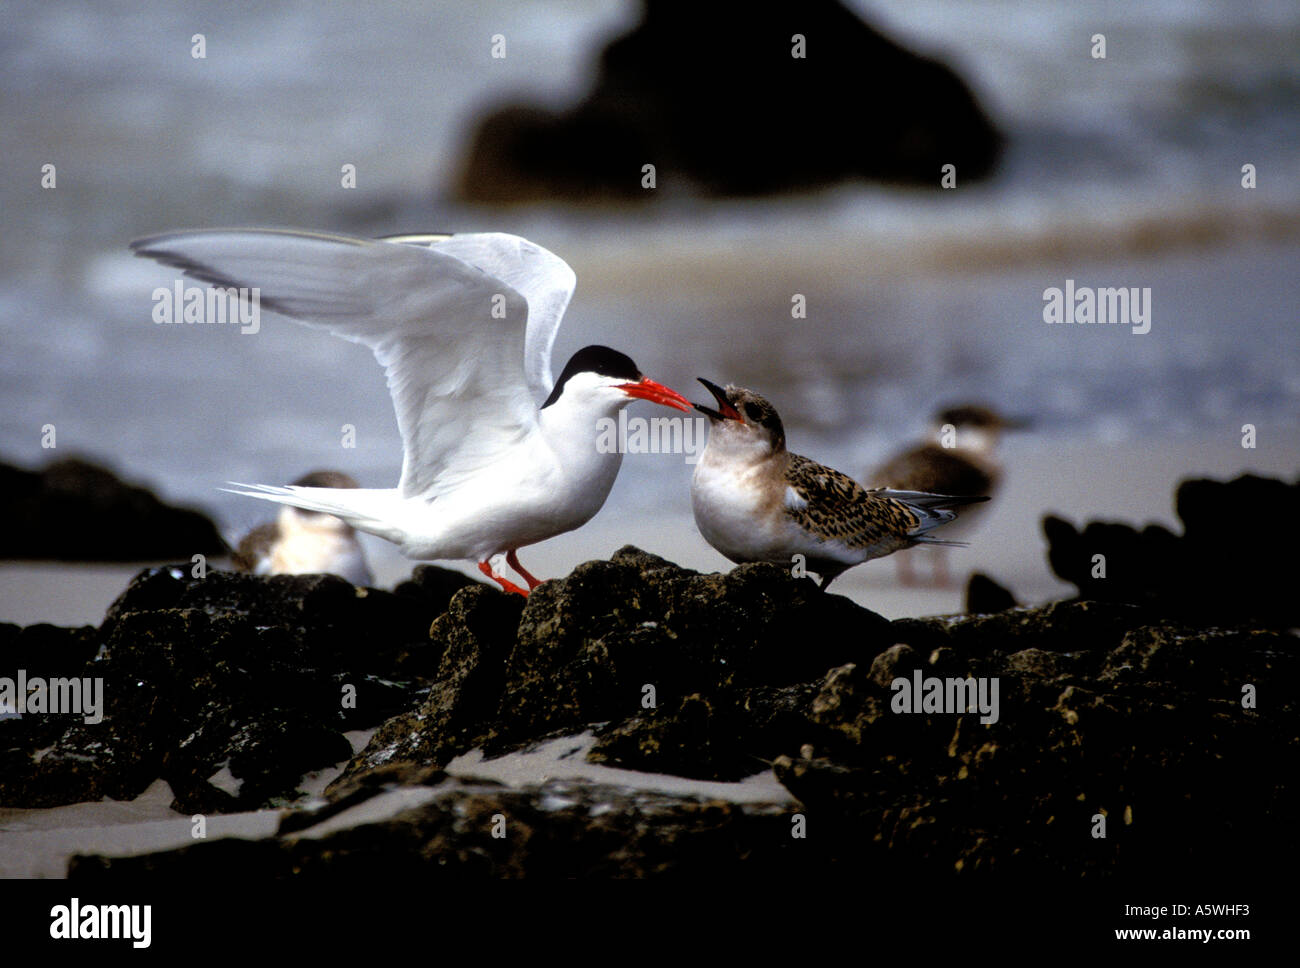 BT2-31 SOUTH AMERICAN TERN AND YOUNG - Stock Image